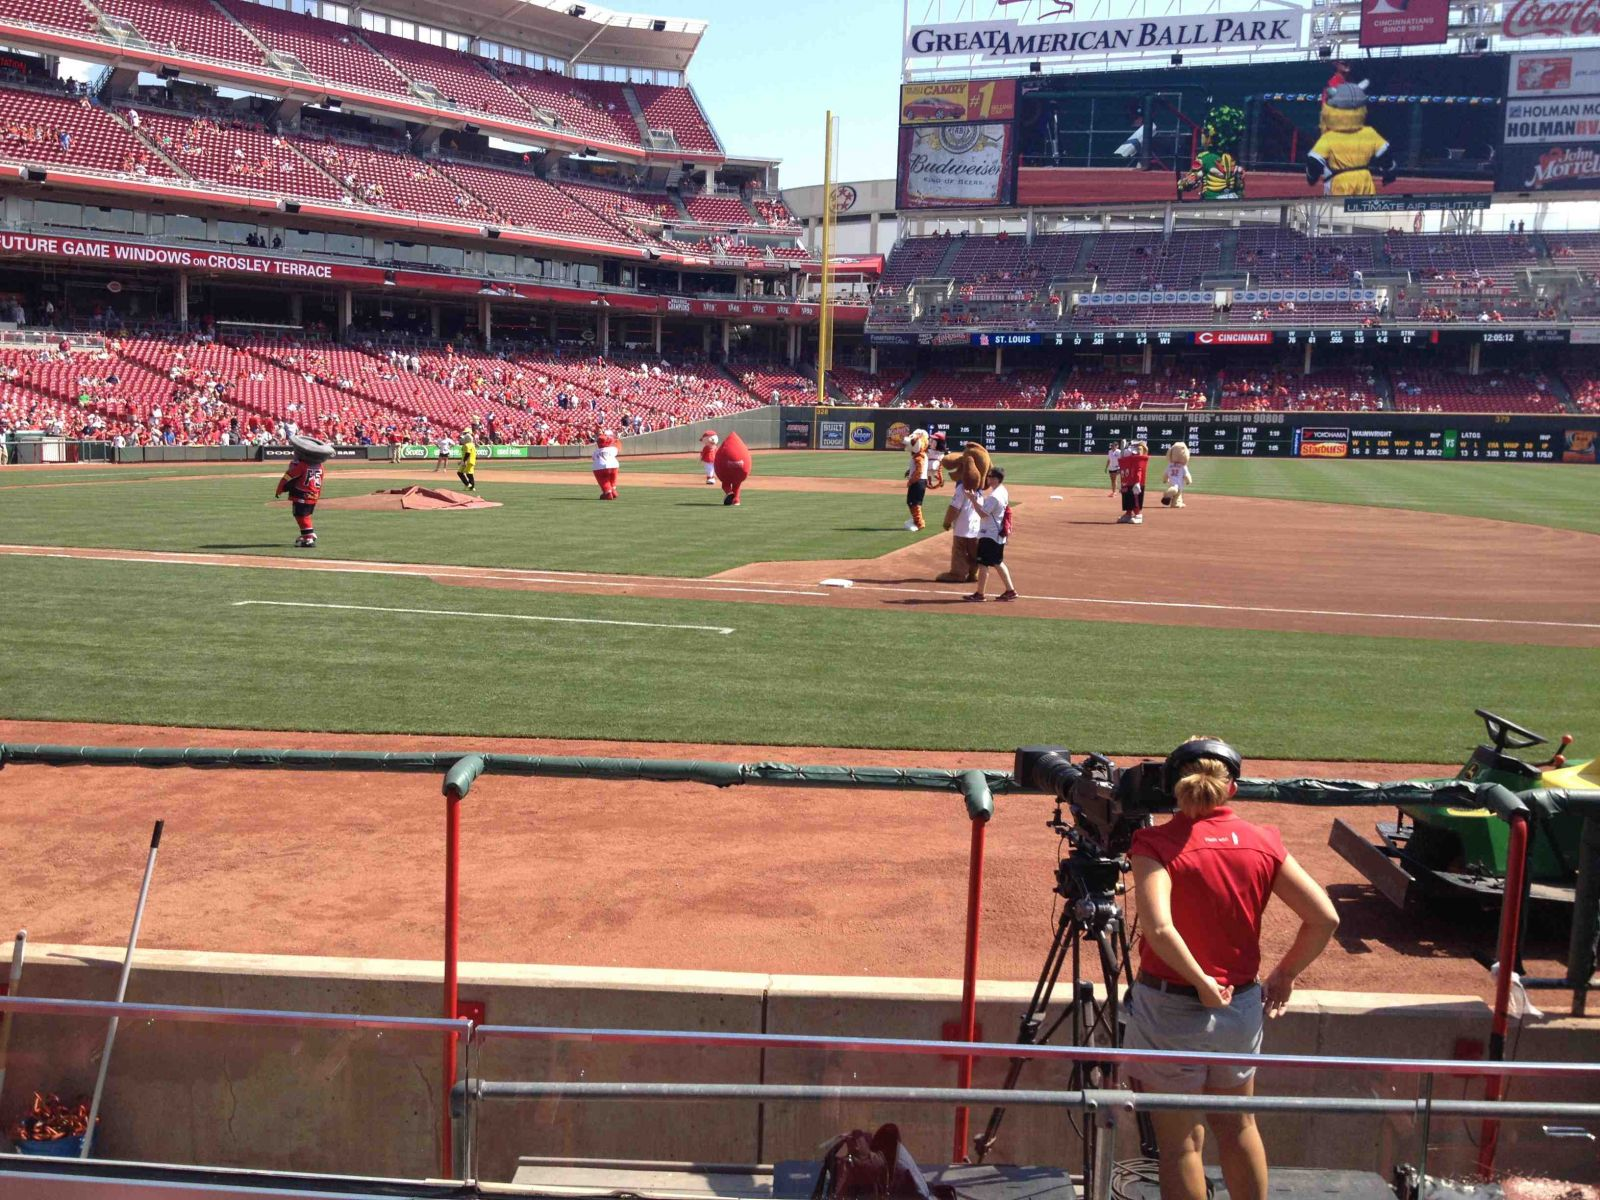 View from Section 131 Row H at Great American Ballpark